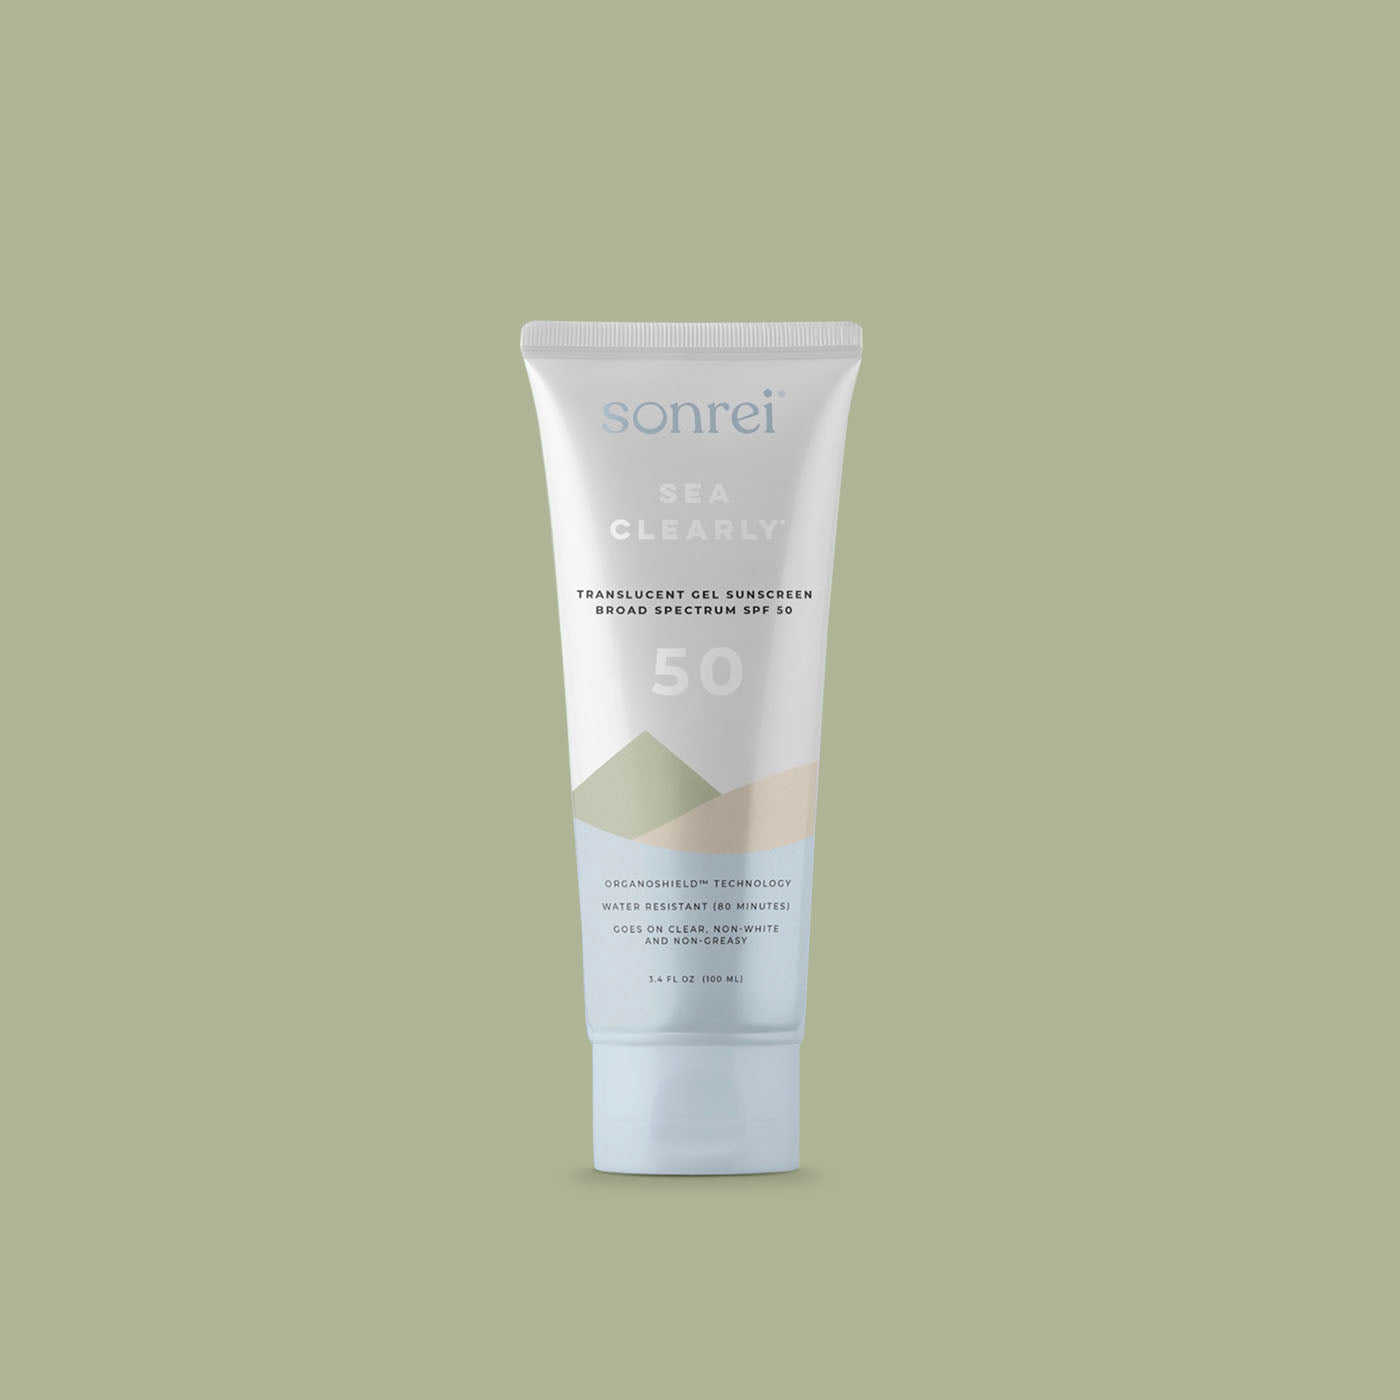 Sonrei Clear Gel Eco-Friendly Sunscreen SPF 50